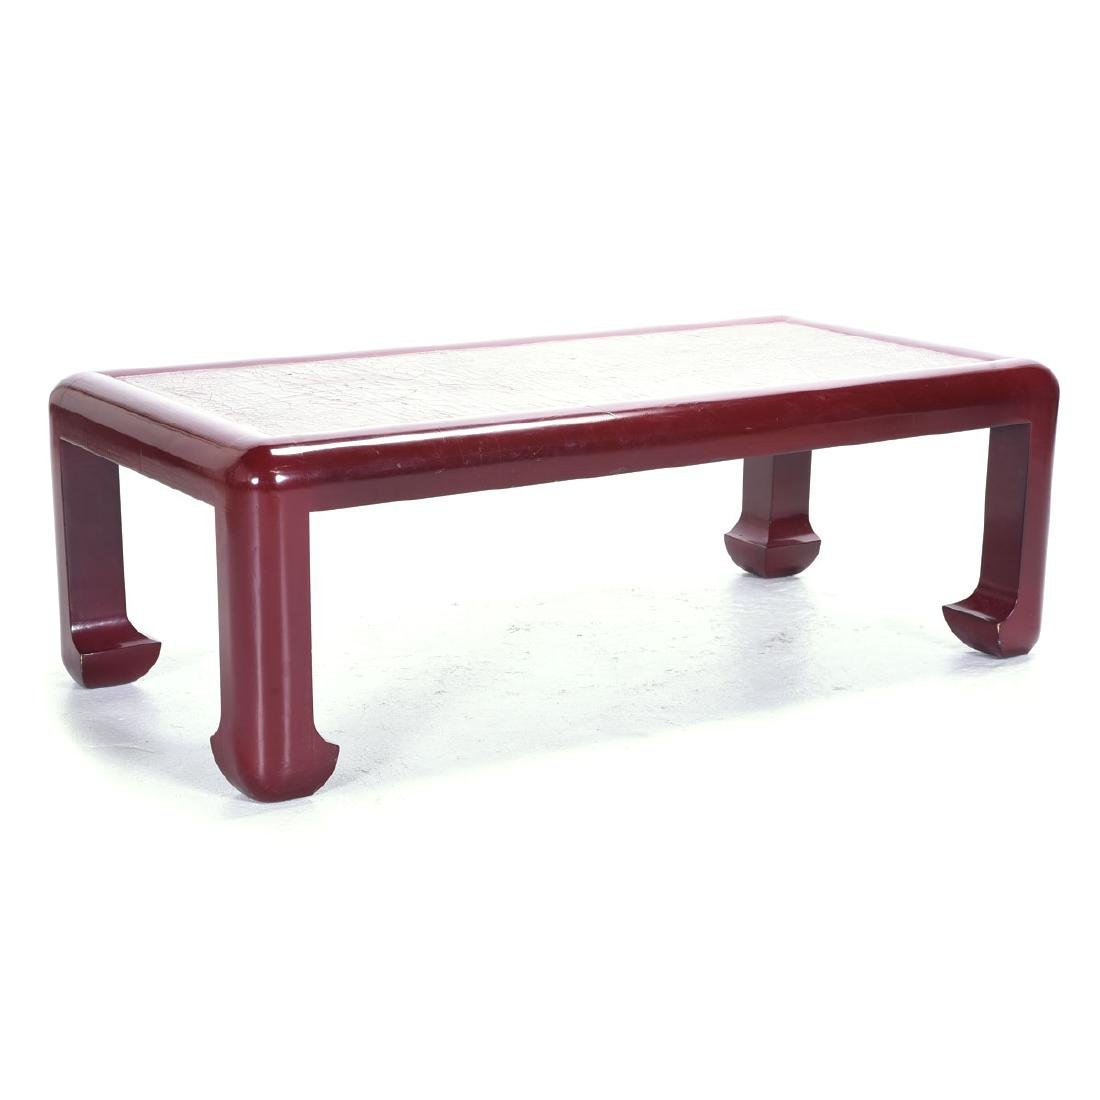 Vintage Karl Springer Style Red Lacquered Coffee Table